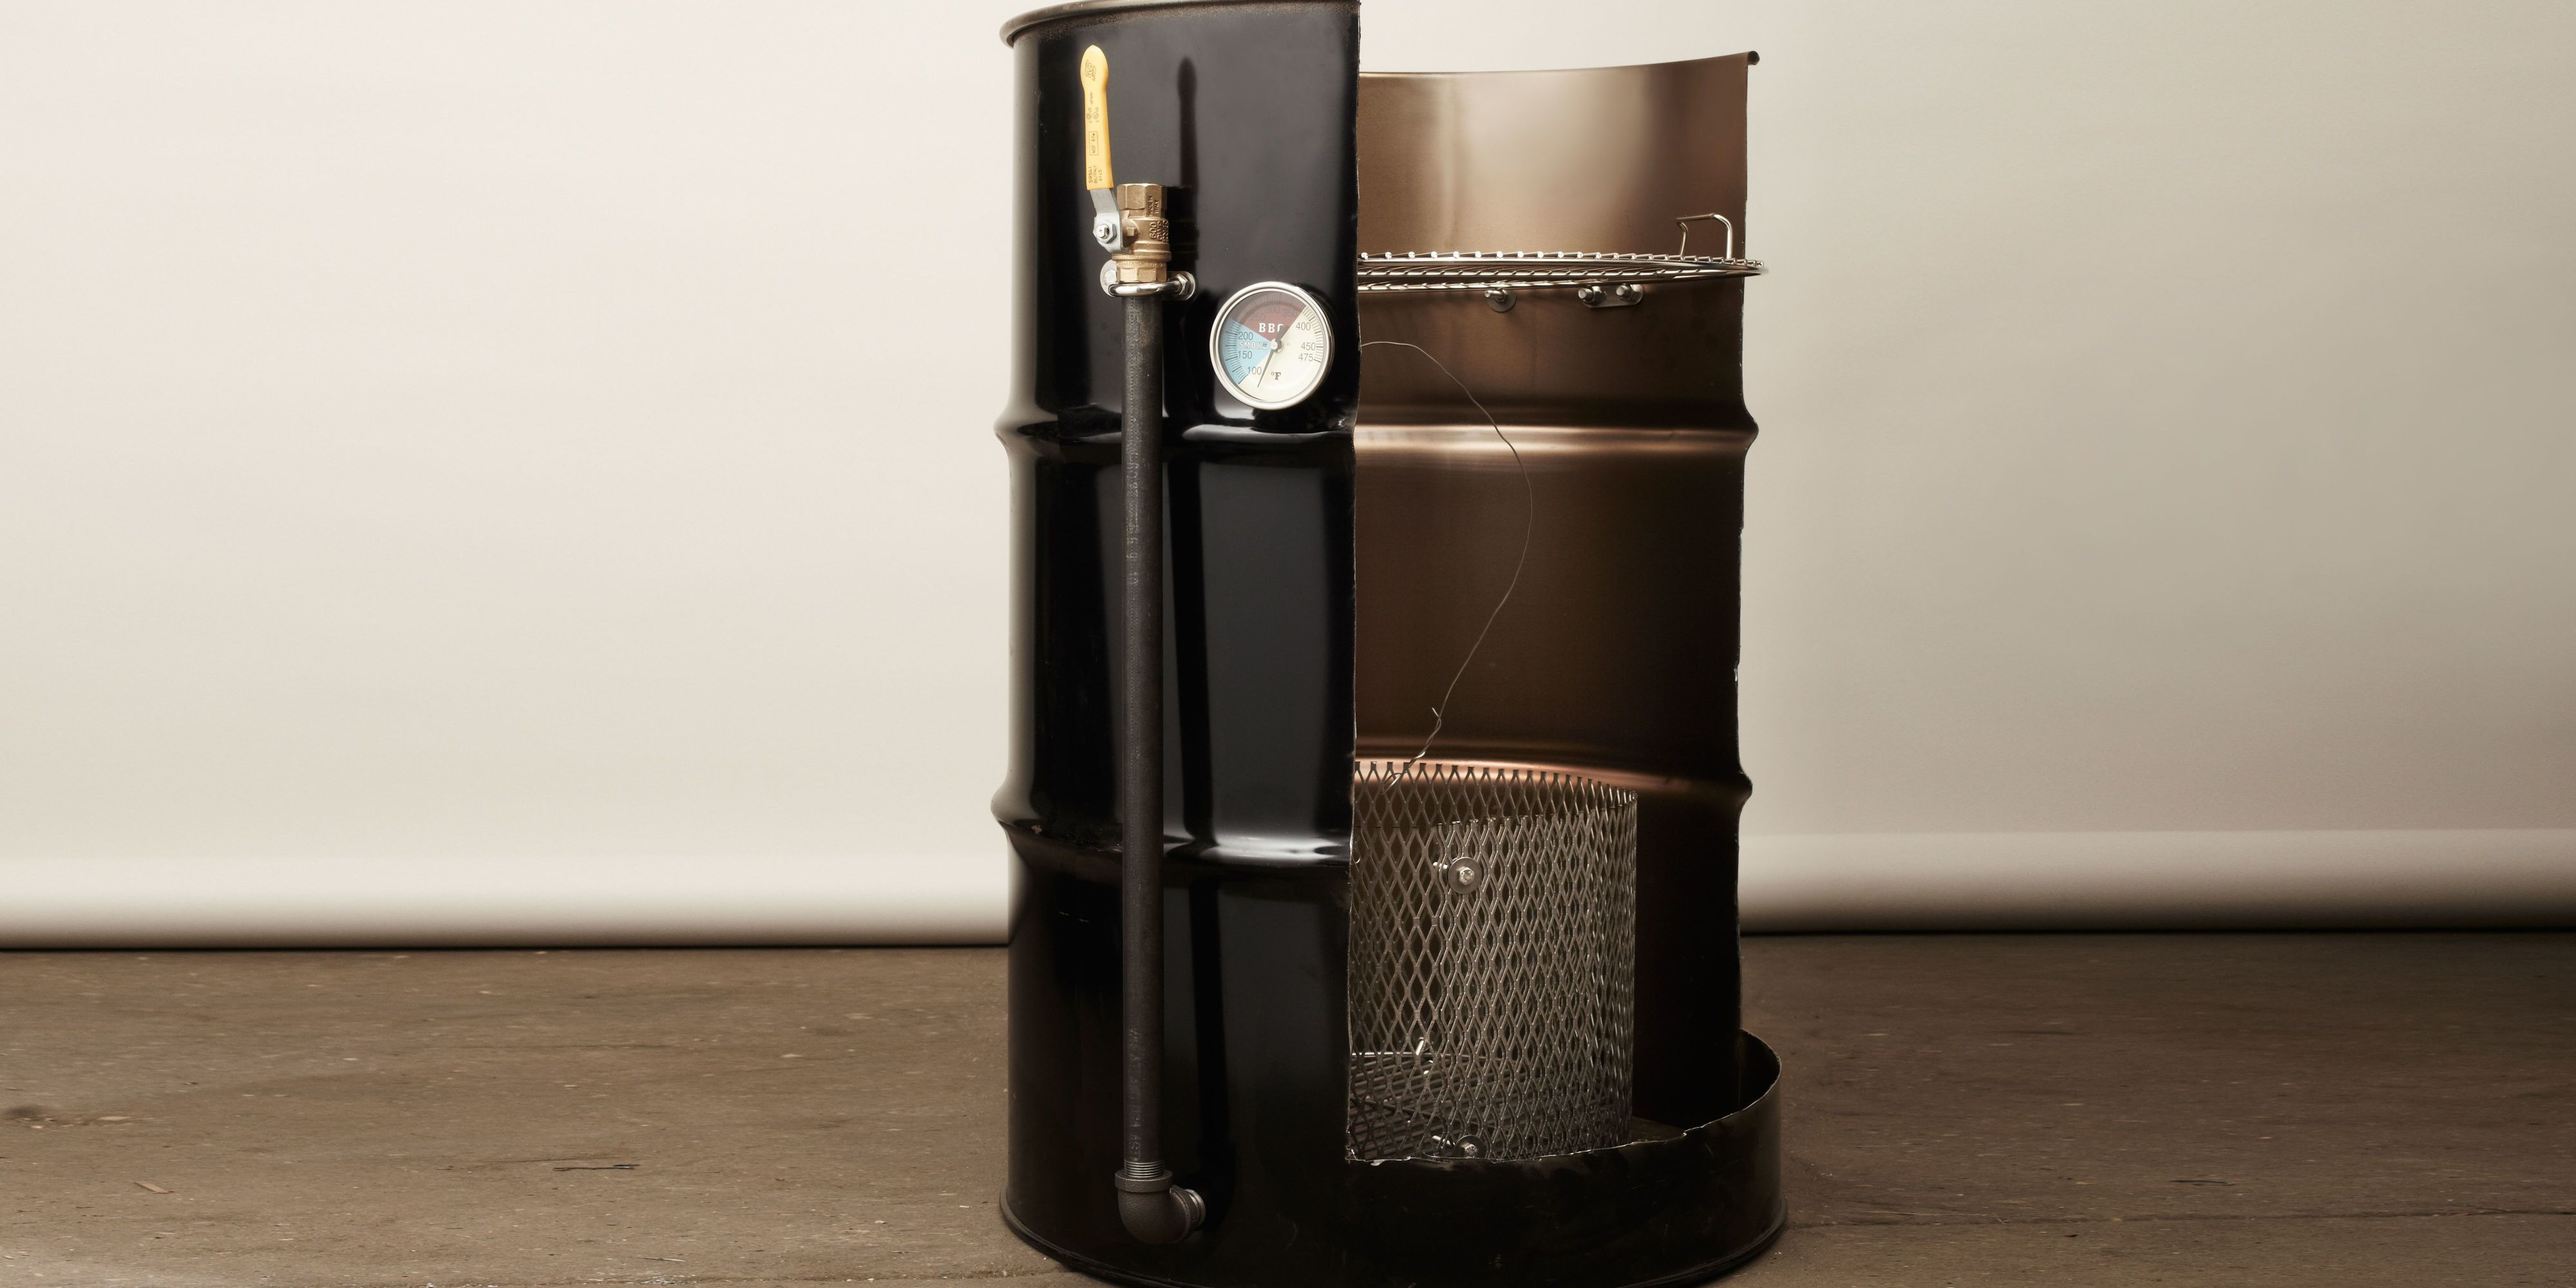 55 Gallon Drum Smoker | Projects Using 55 Gallon Drum